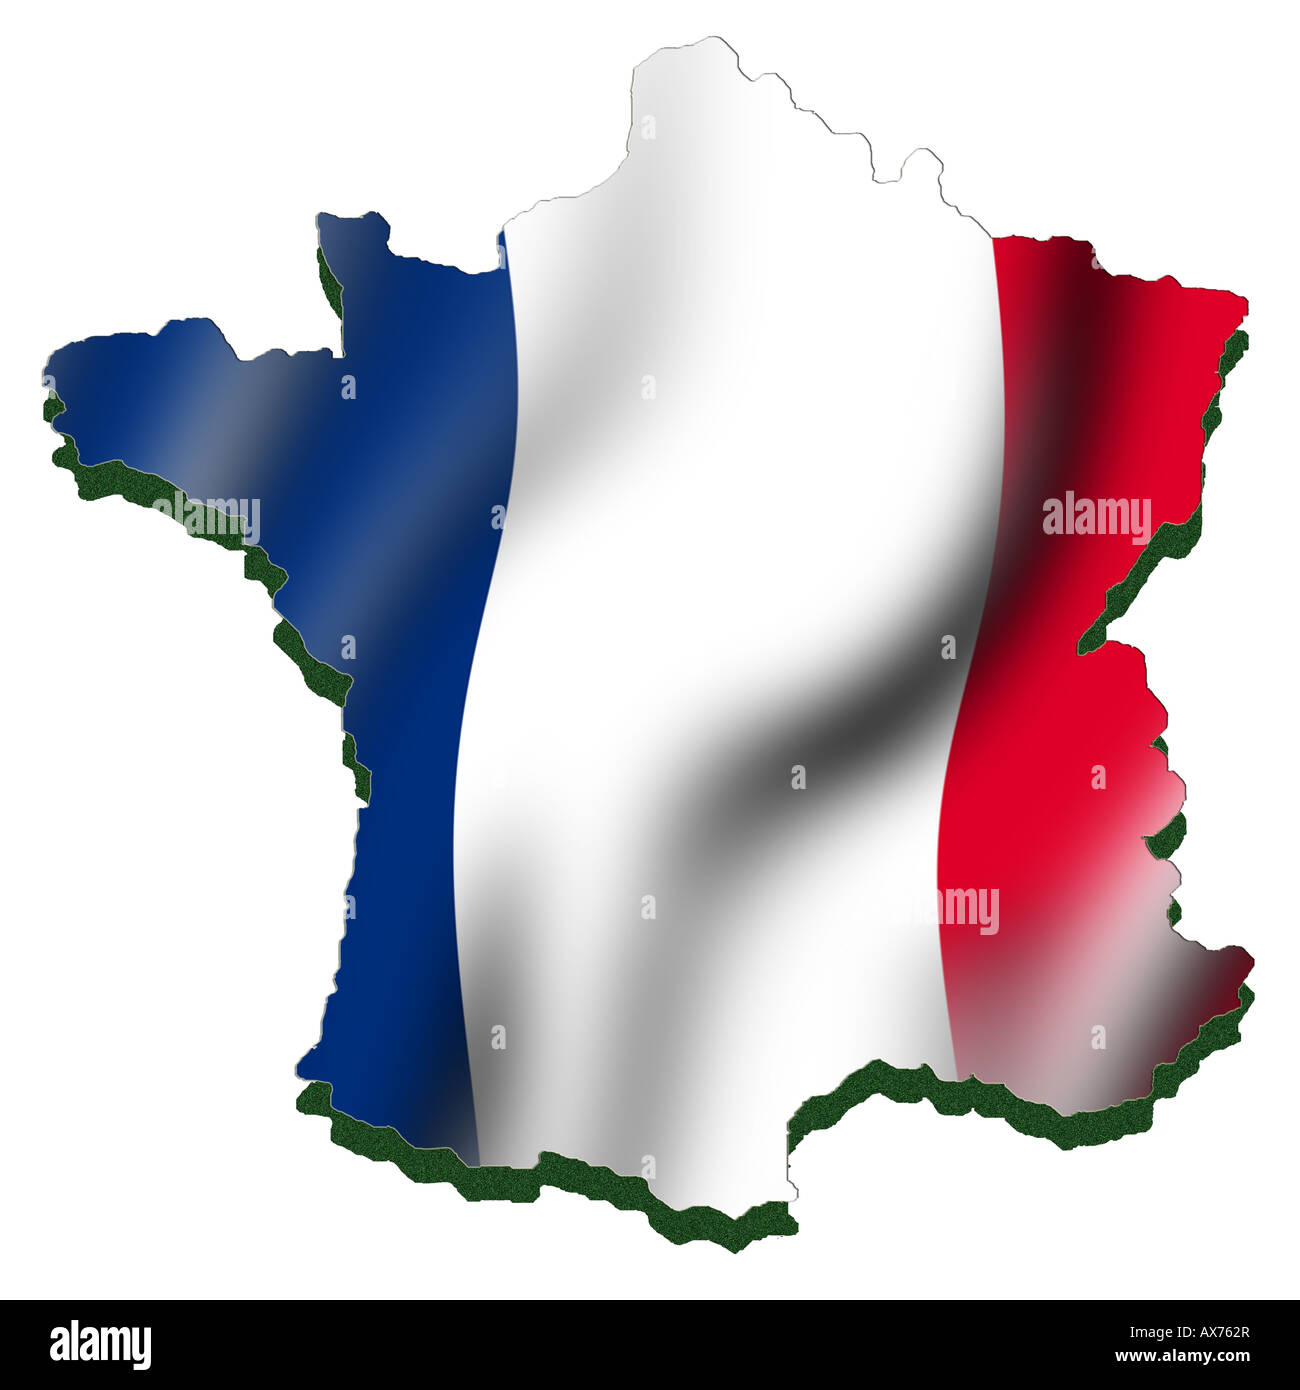 Outline map and flag of France - Stock Image